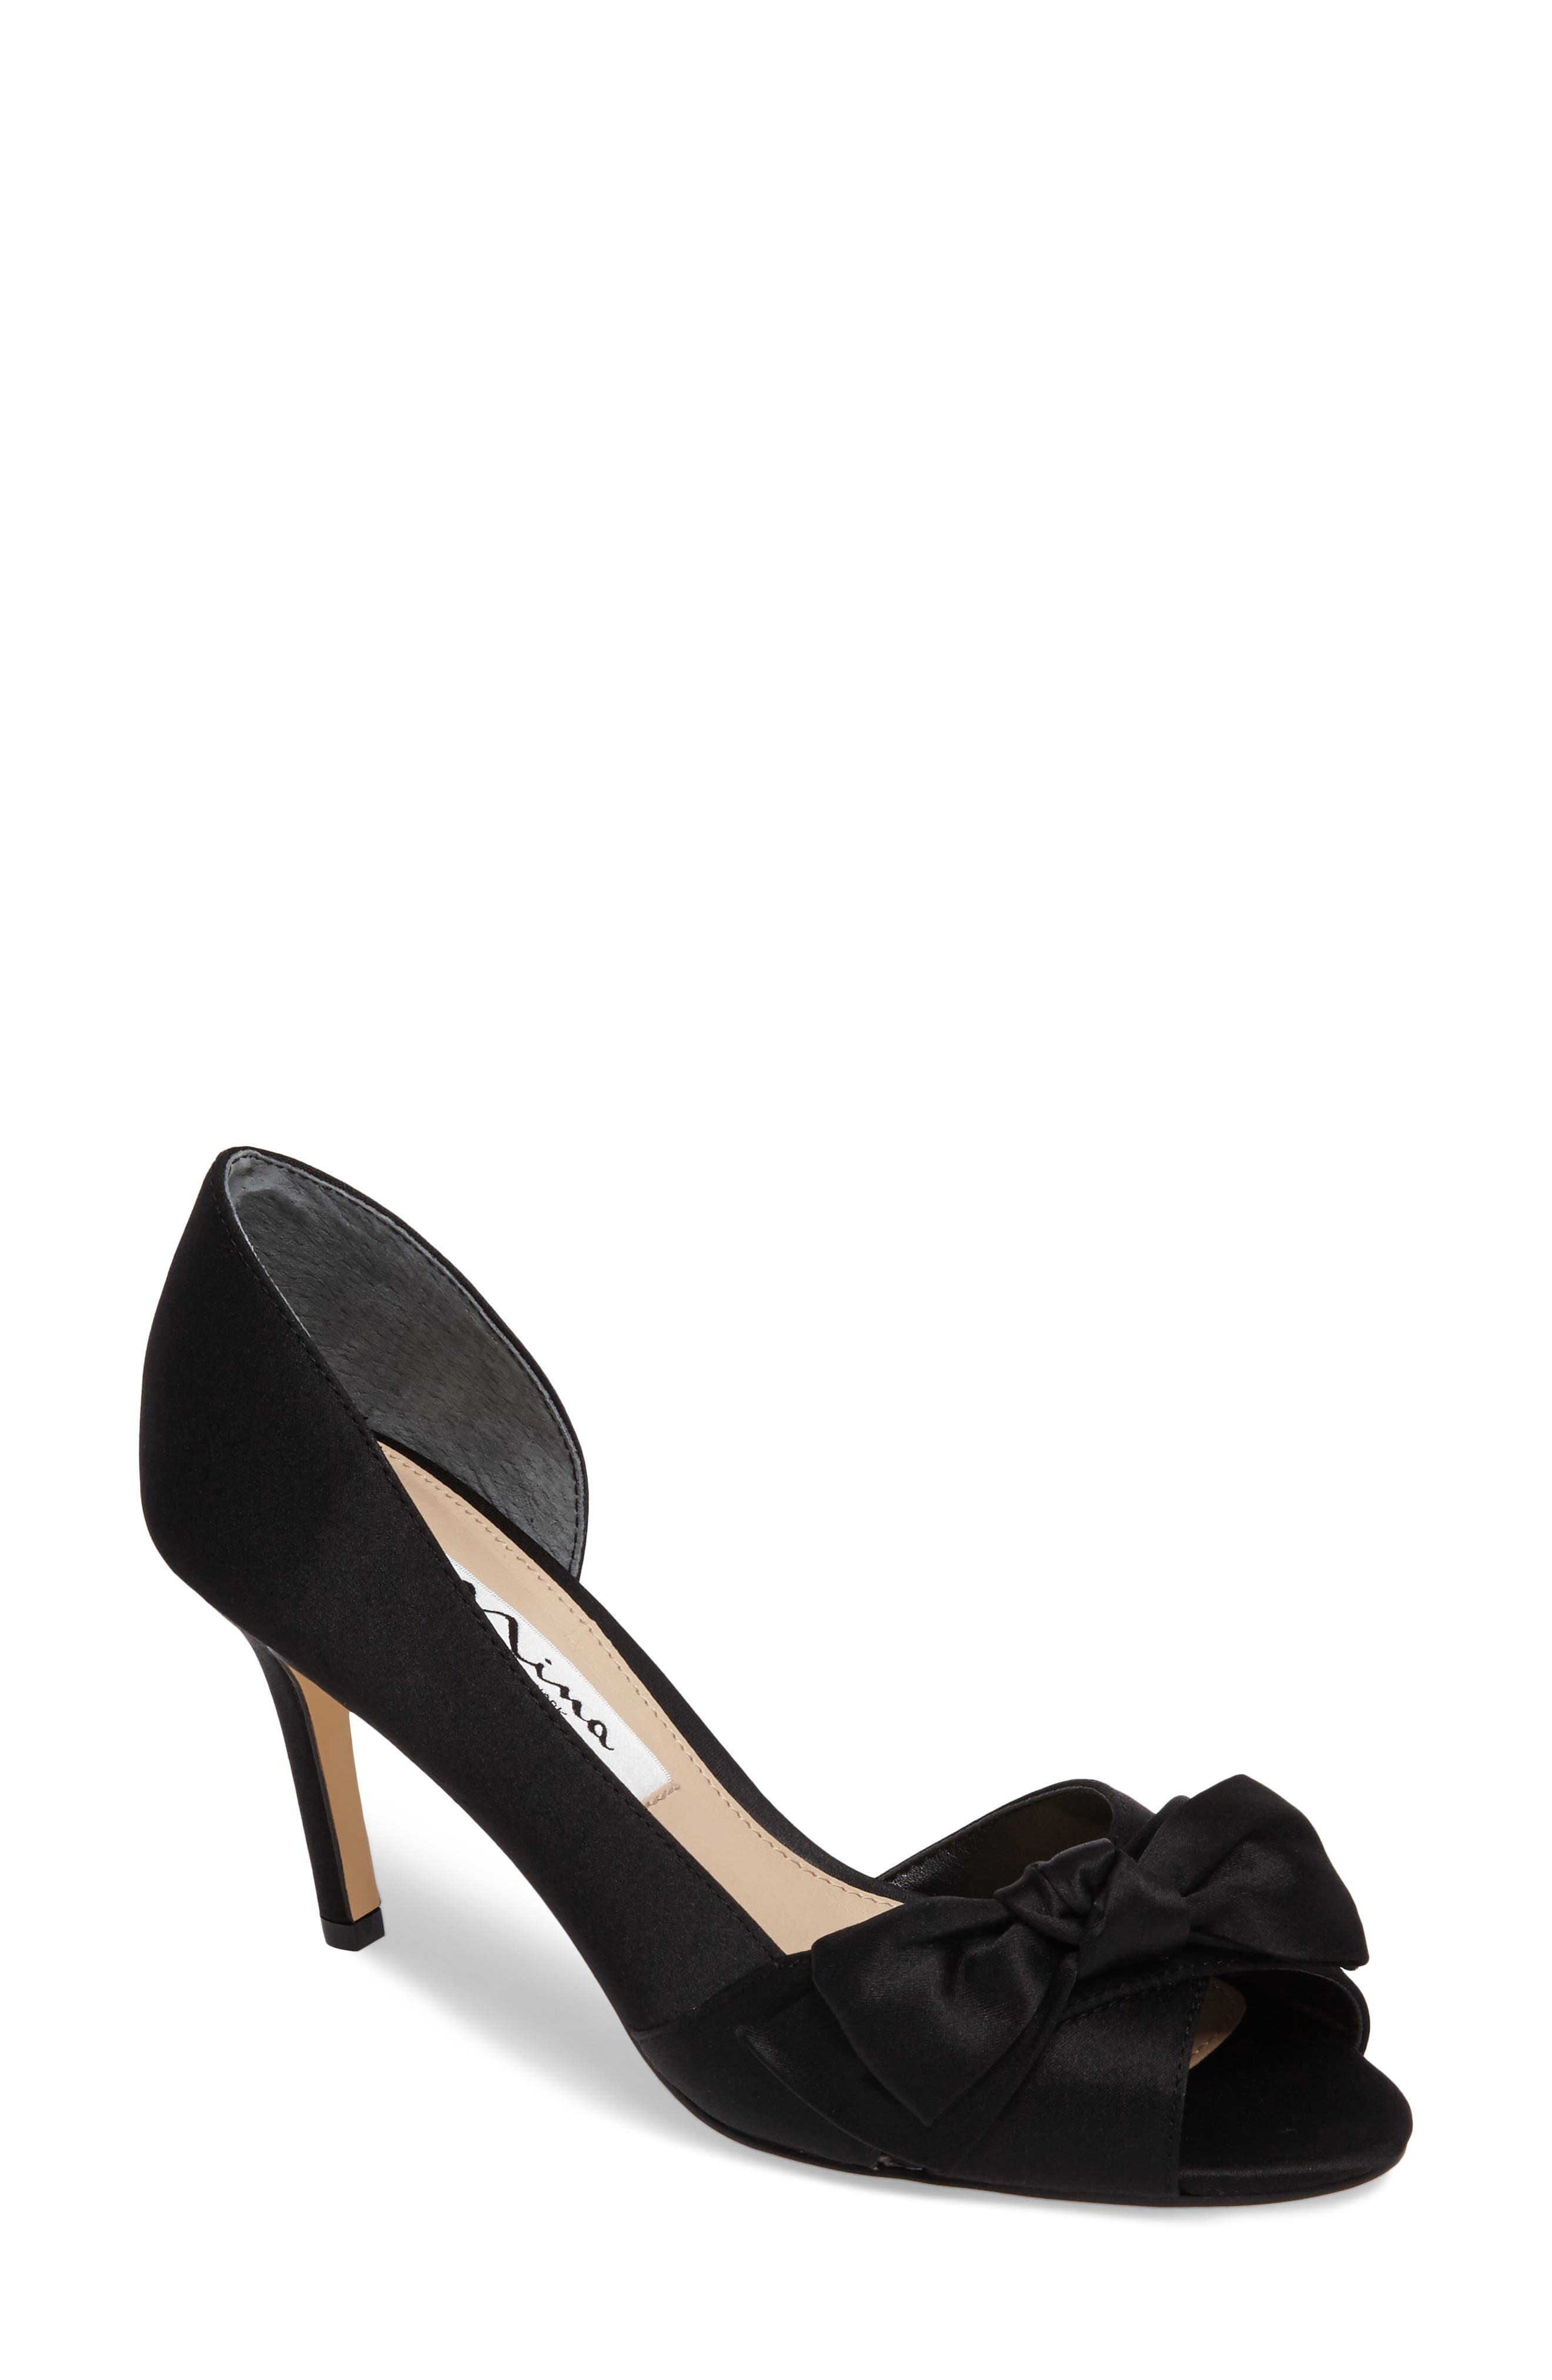 'Forbes' Peep Toe Pump,                         Main,                         color, 004